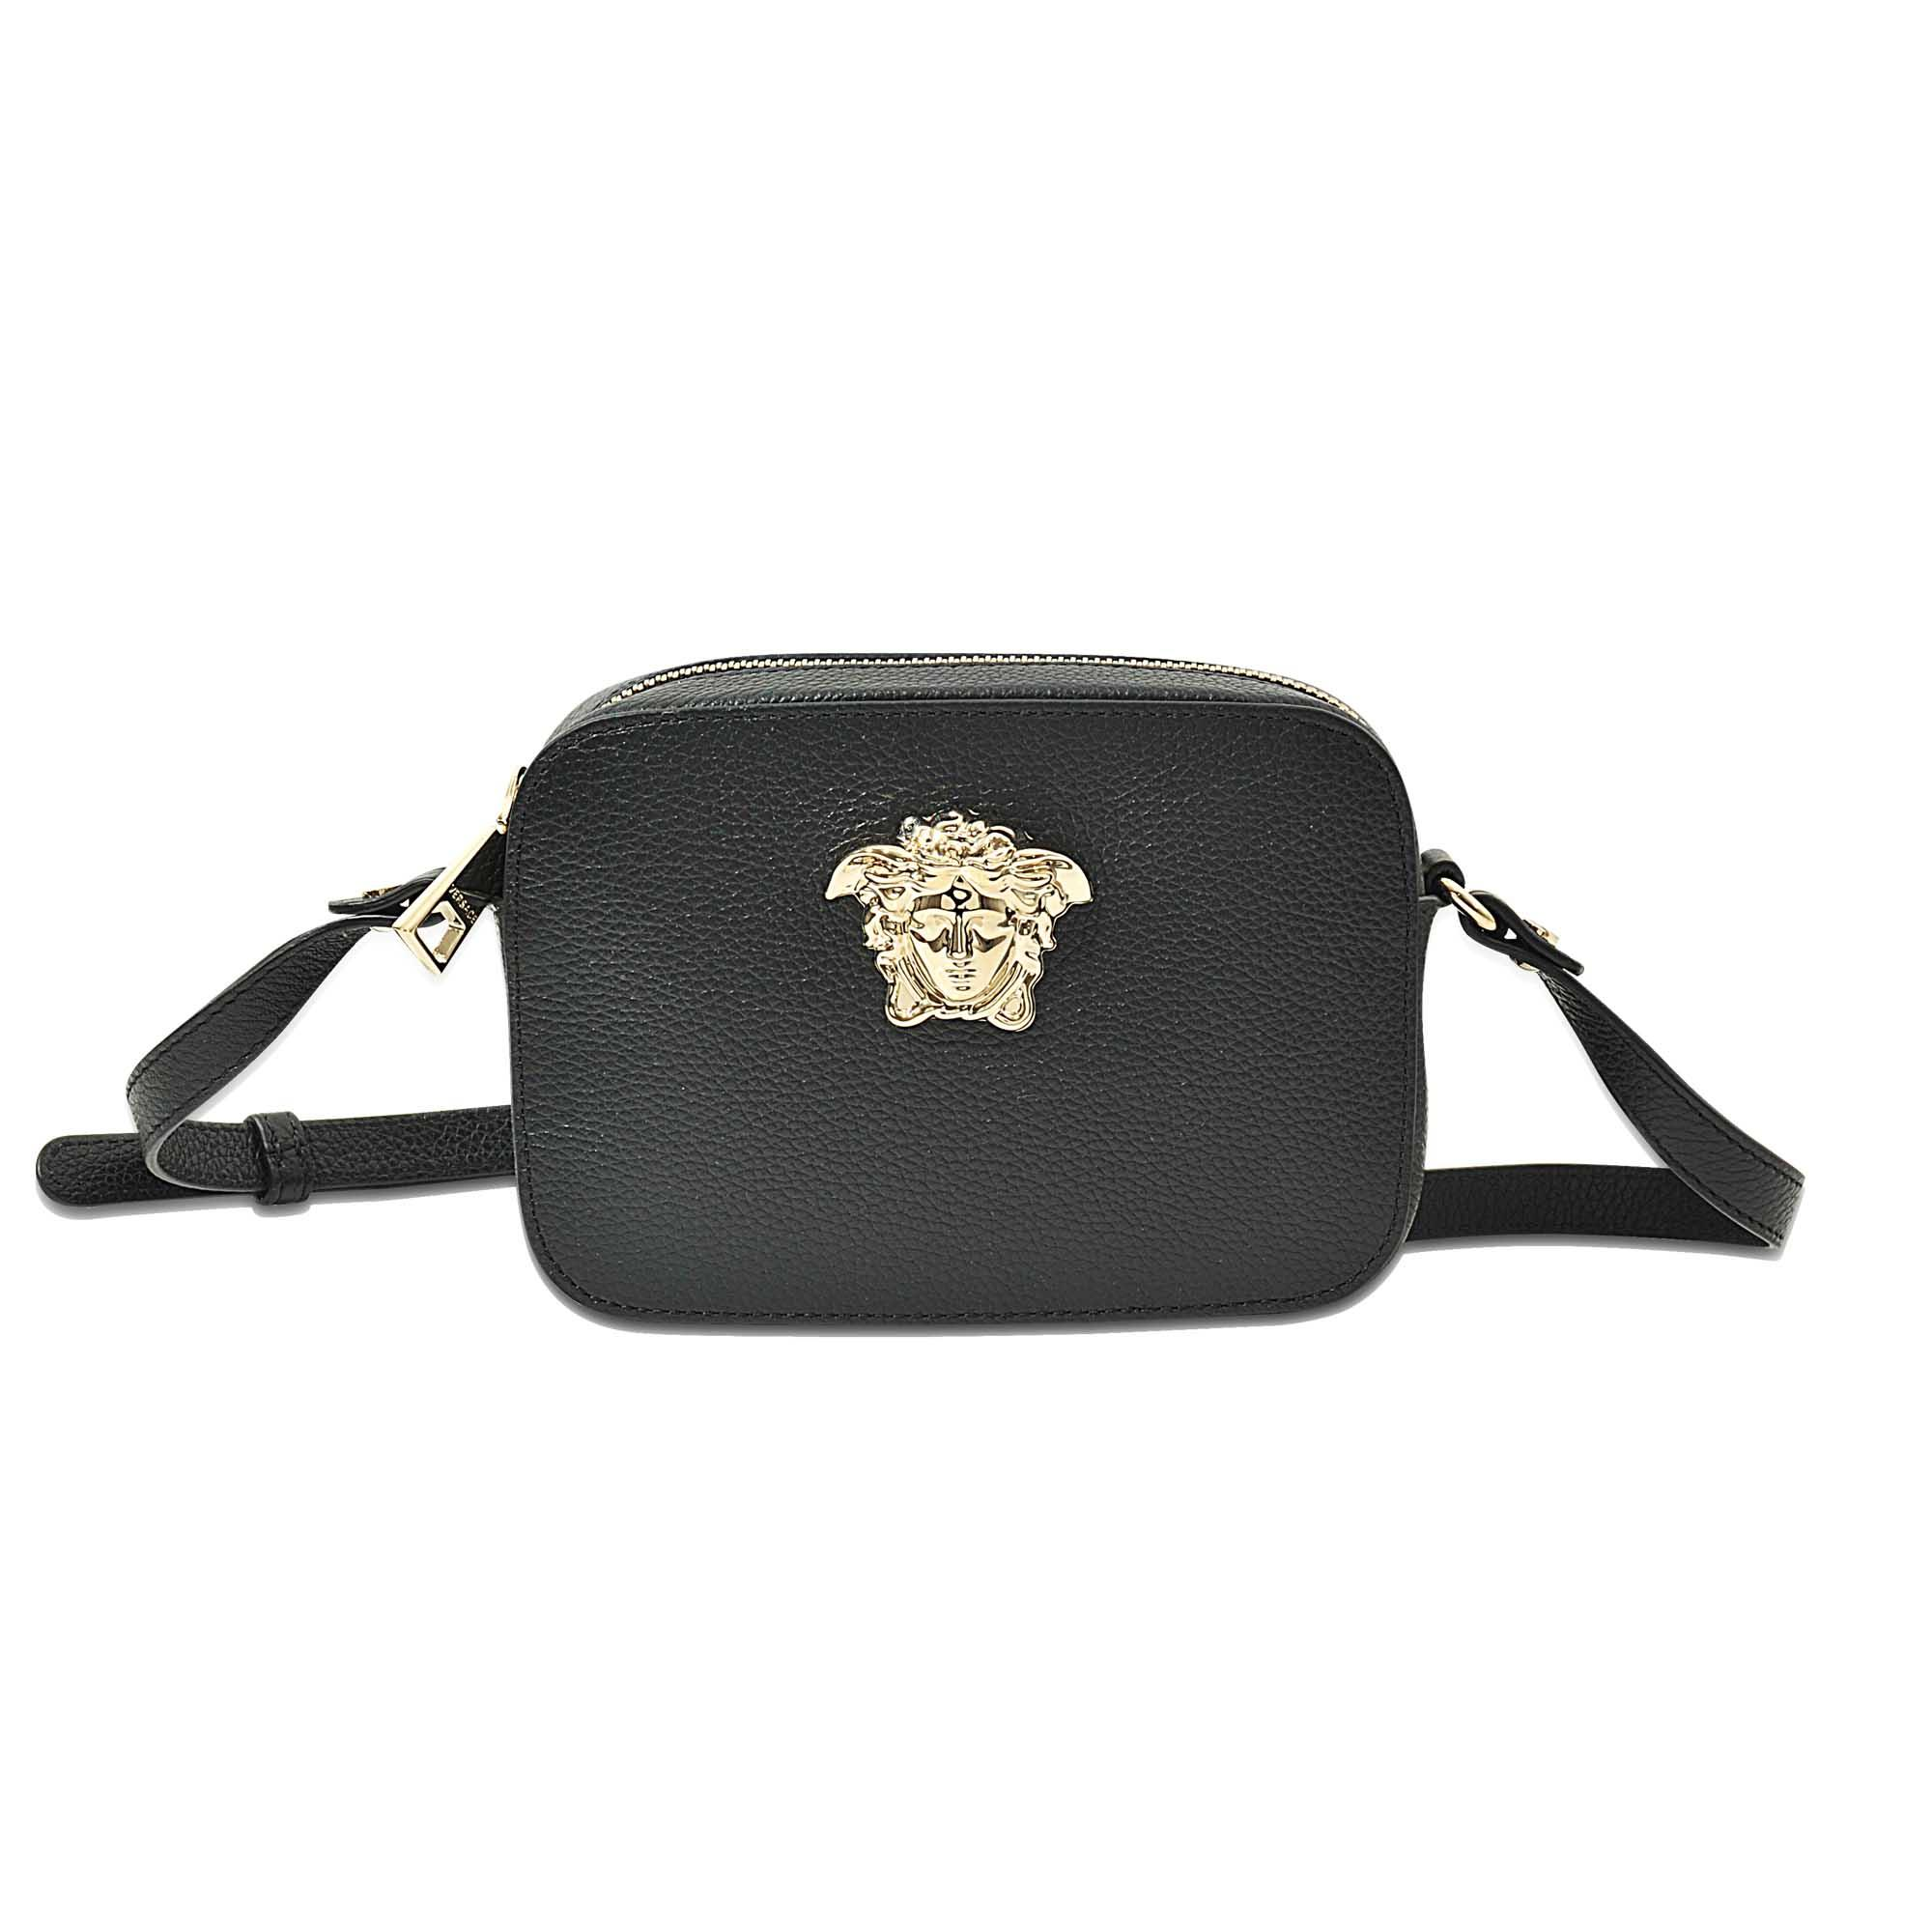 b99e0571ee3c Lyst - Versace  palazzo Medusa  Duffle Bag in Black